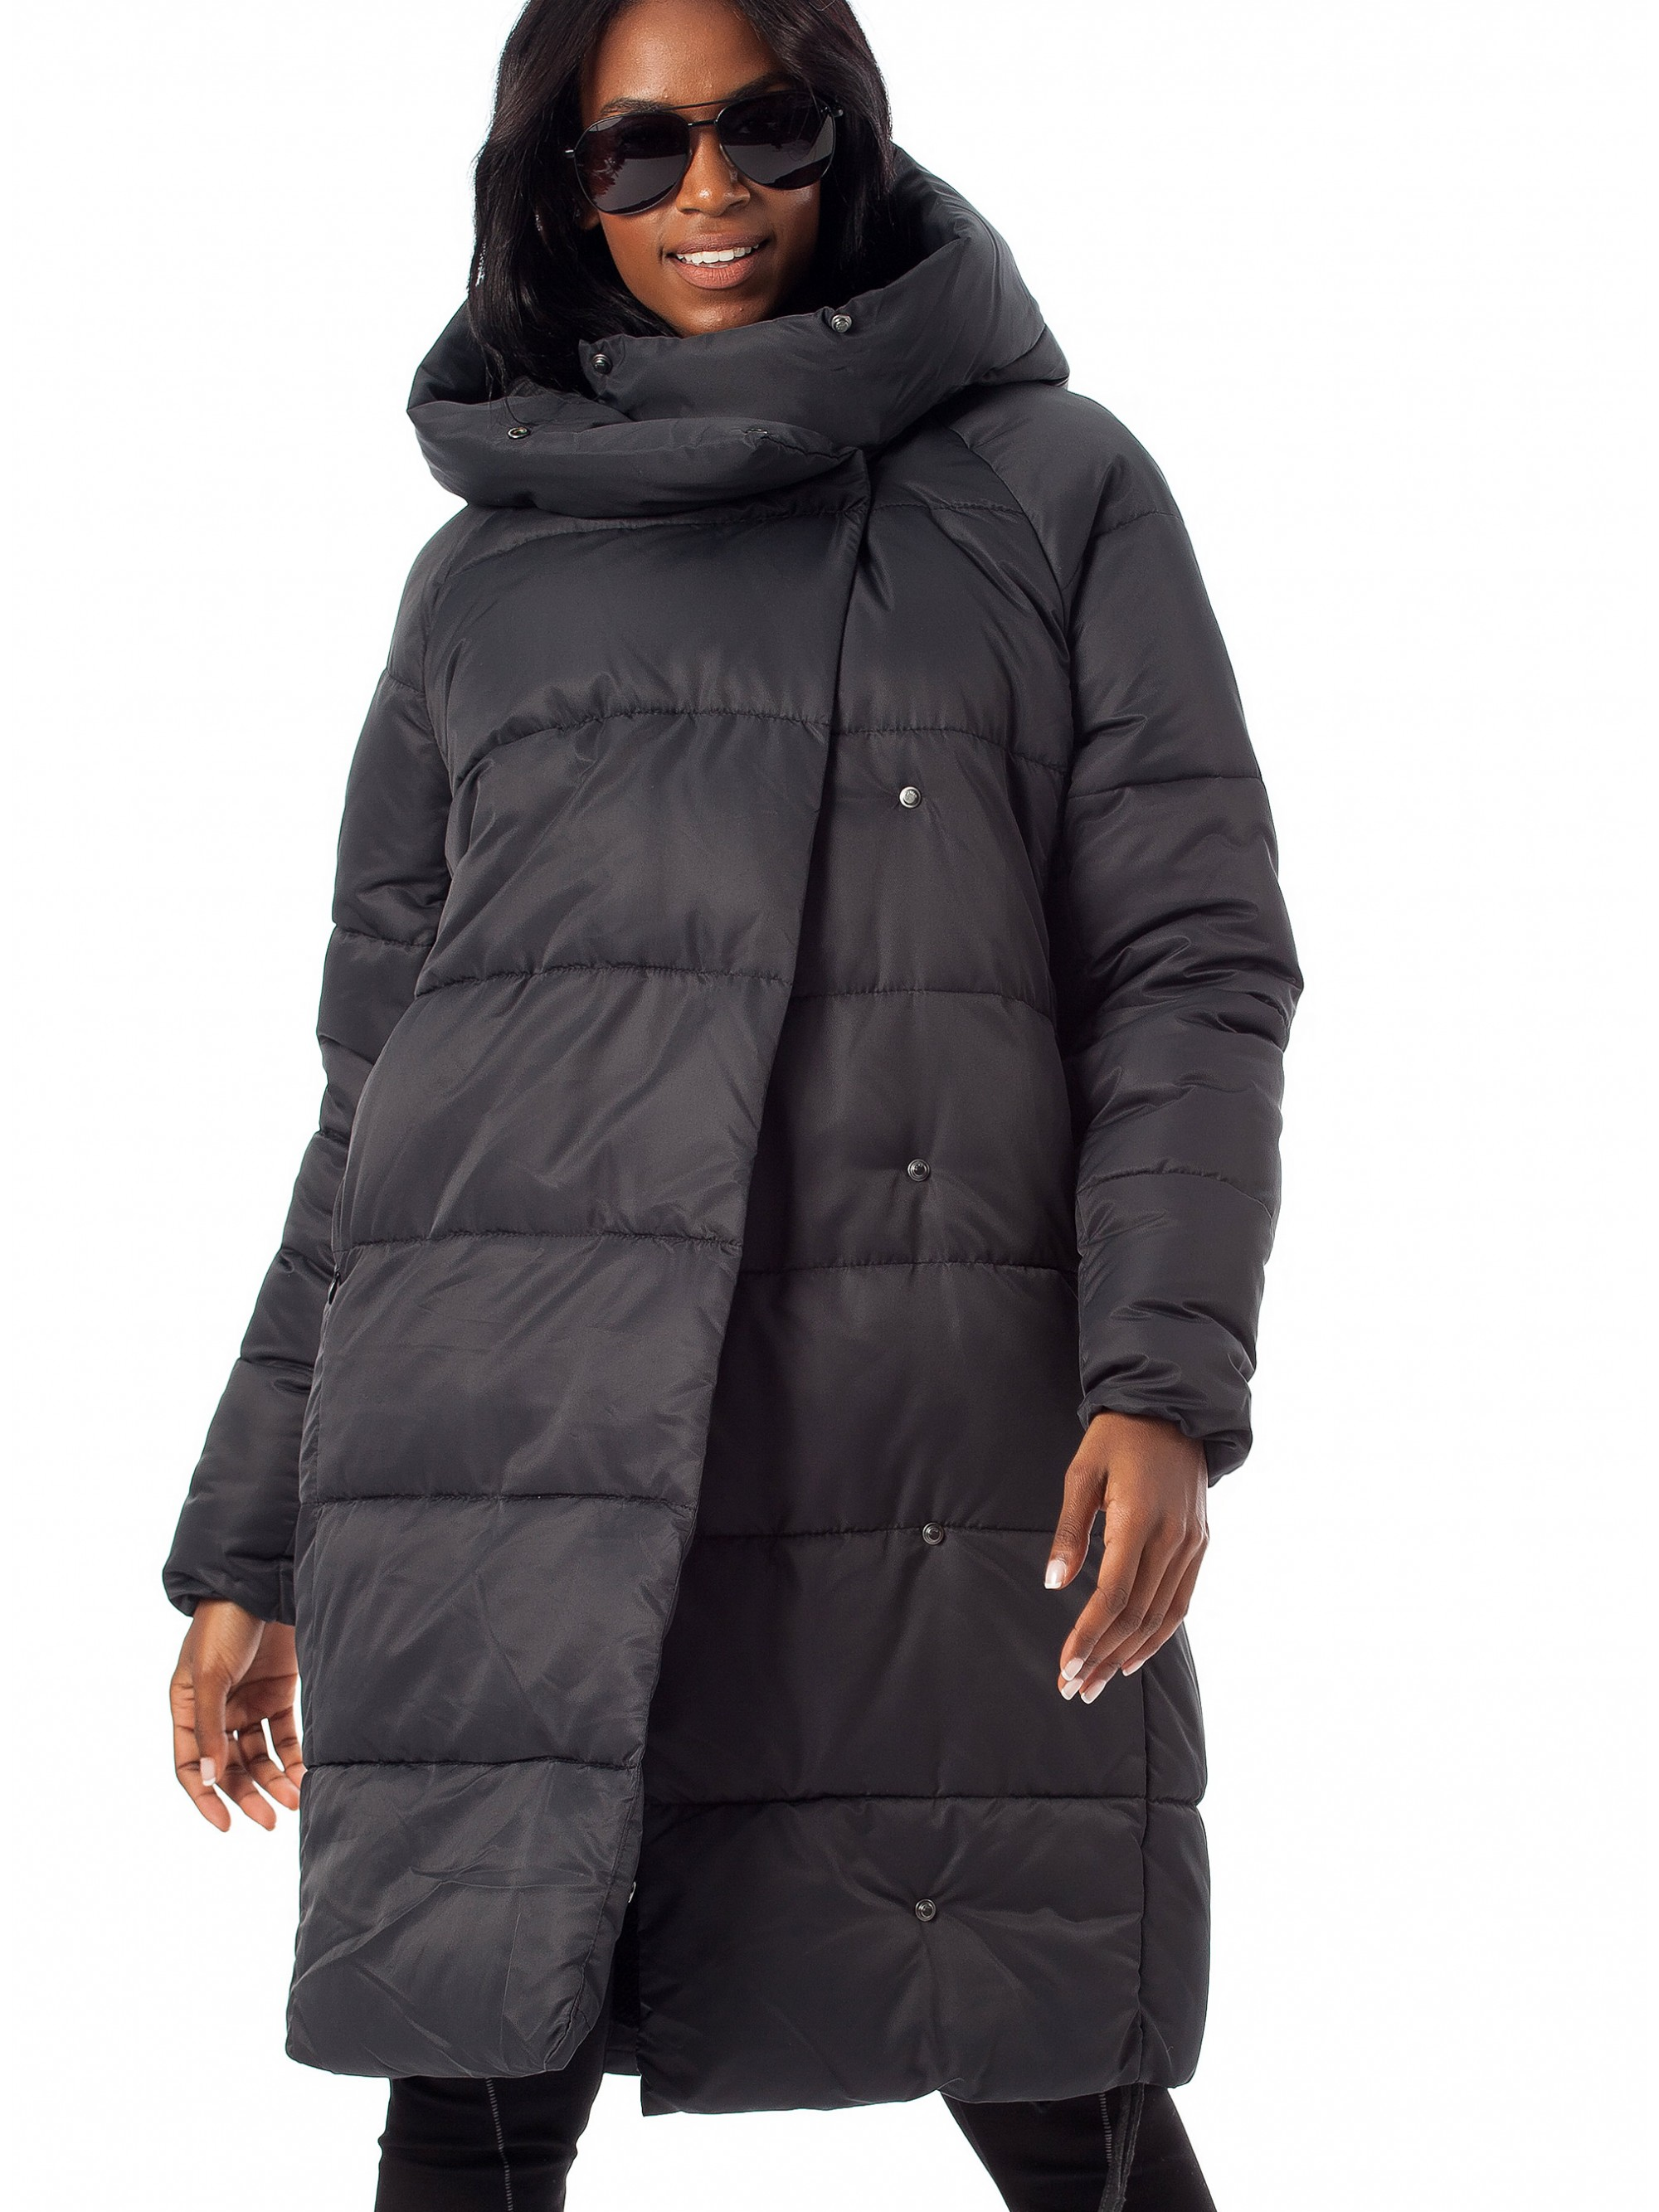 8971d0c4b78f Only Quilted Long Jacket-Black - Jackets   Coats - Tops - Women